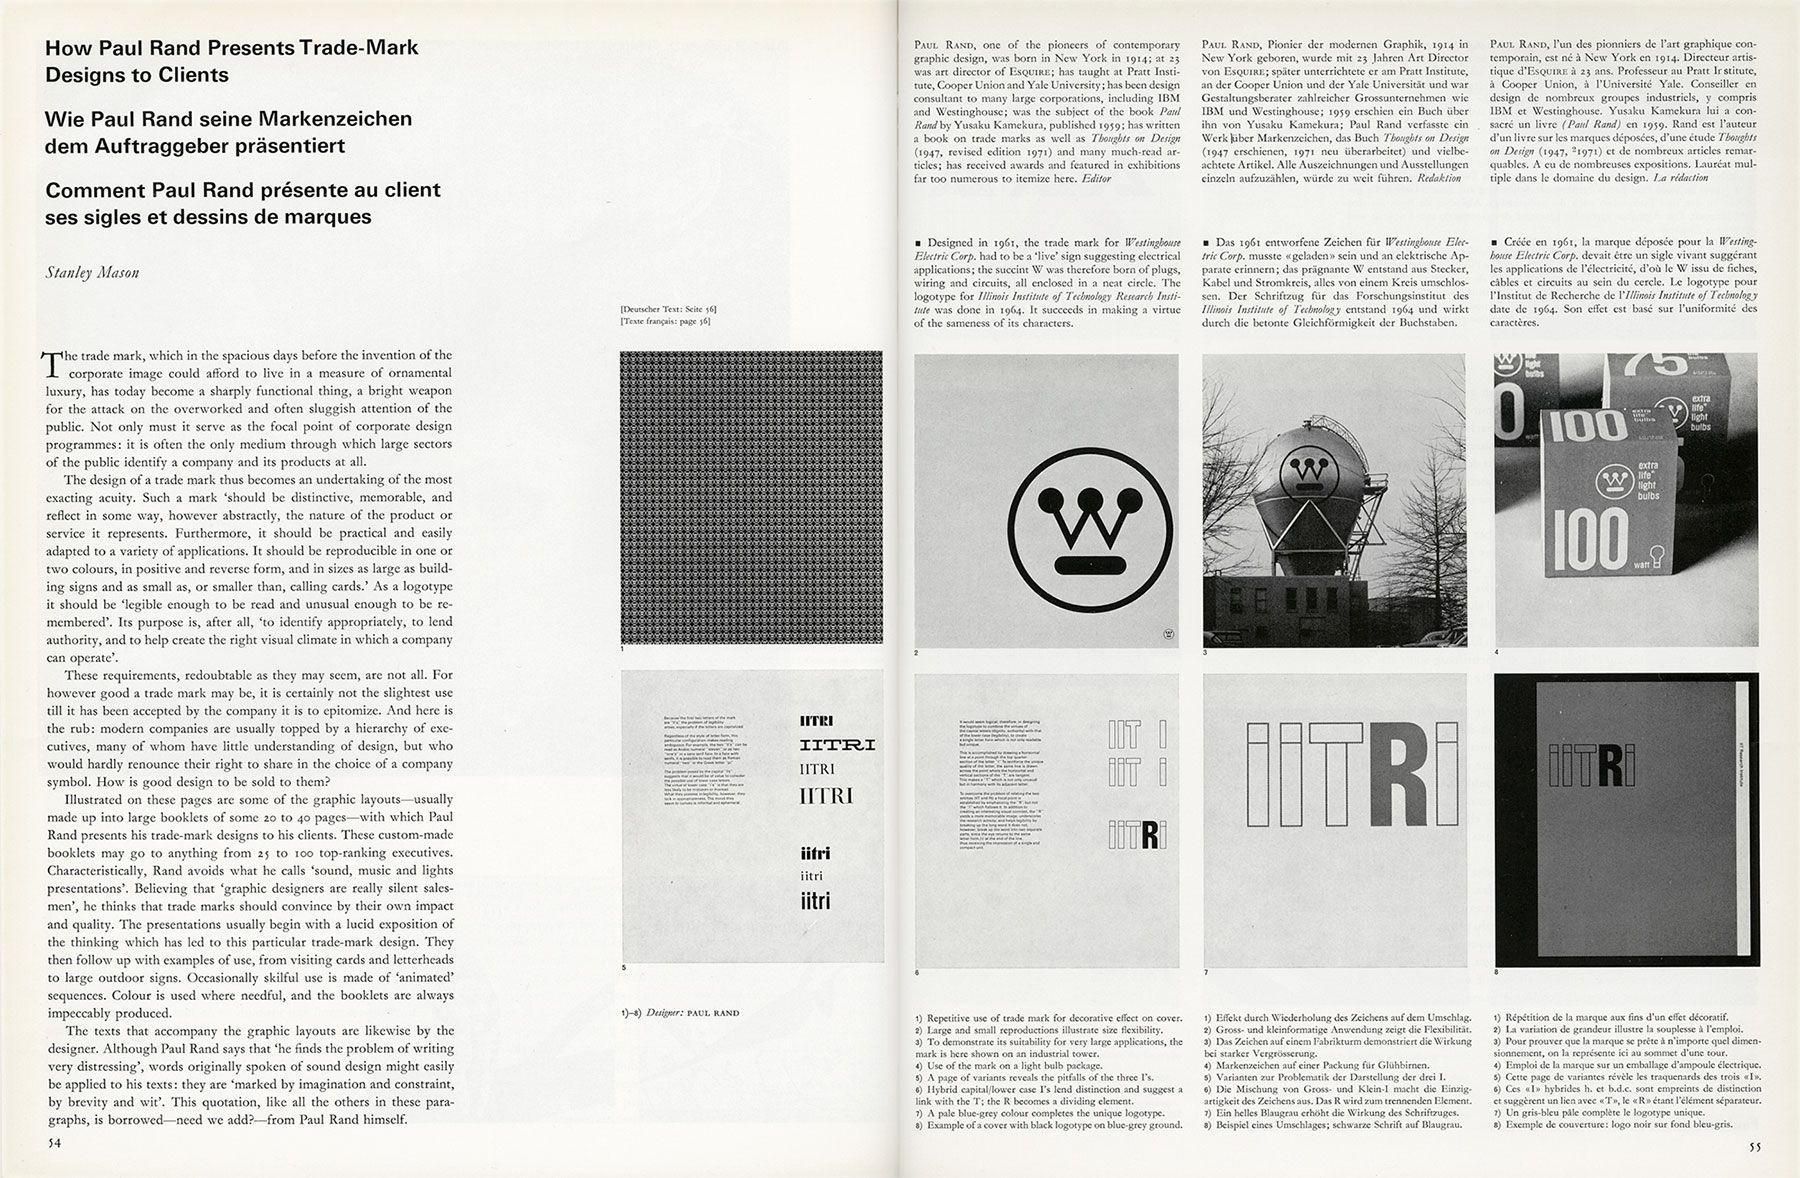 How Paul Rand presented logos to clients | Trade mark, Logos and ...